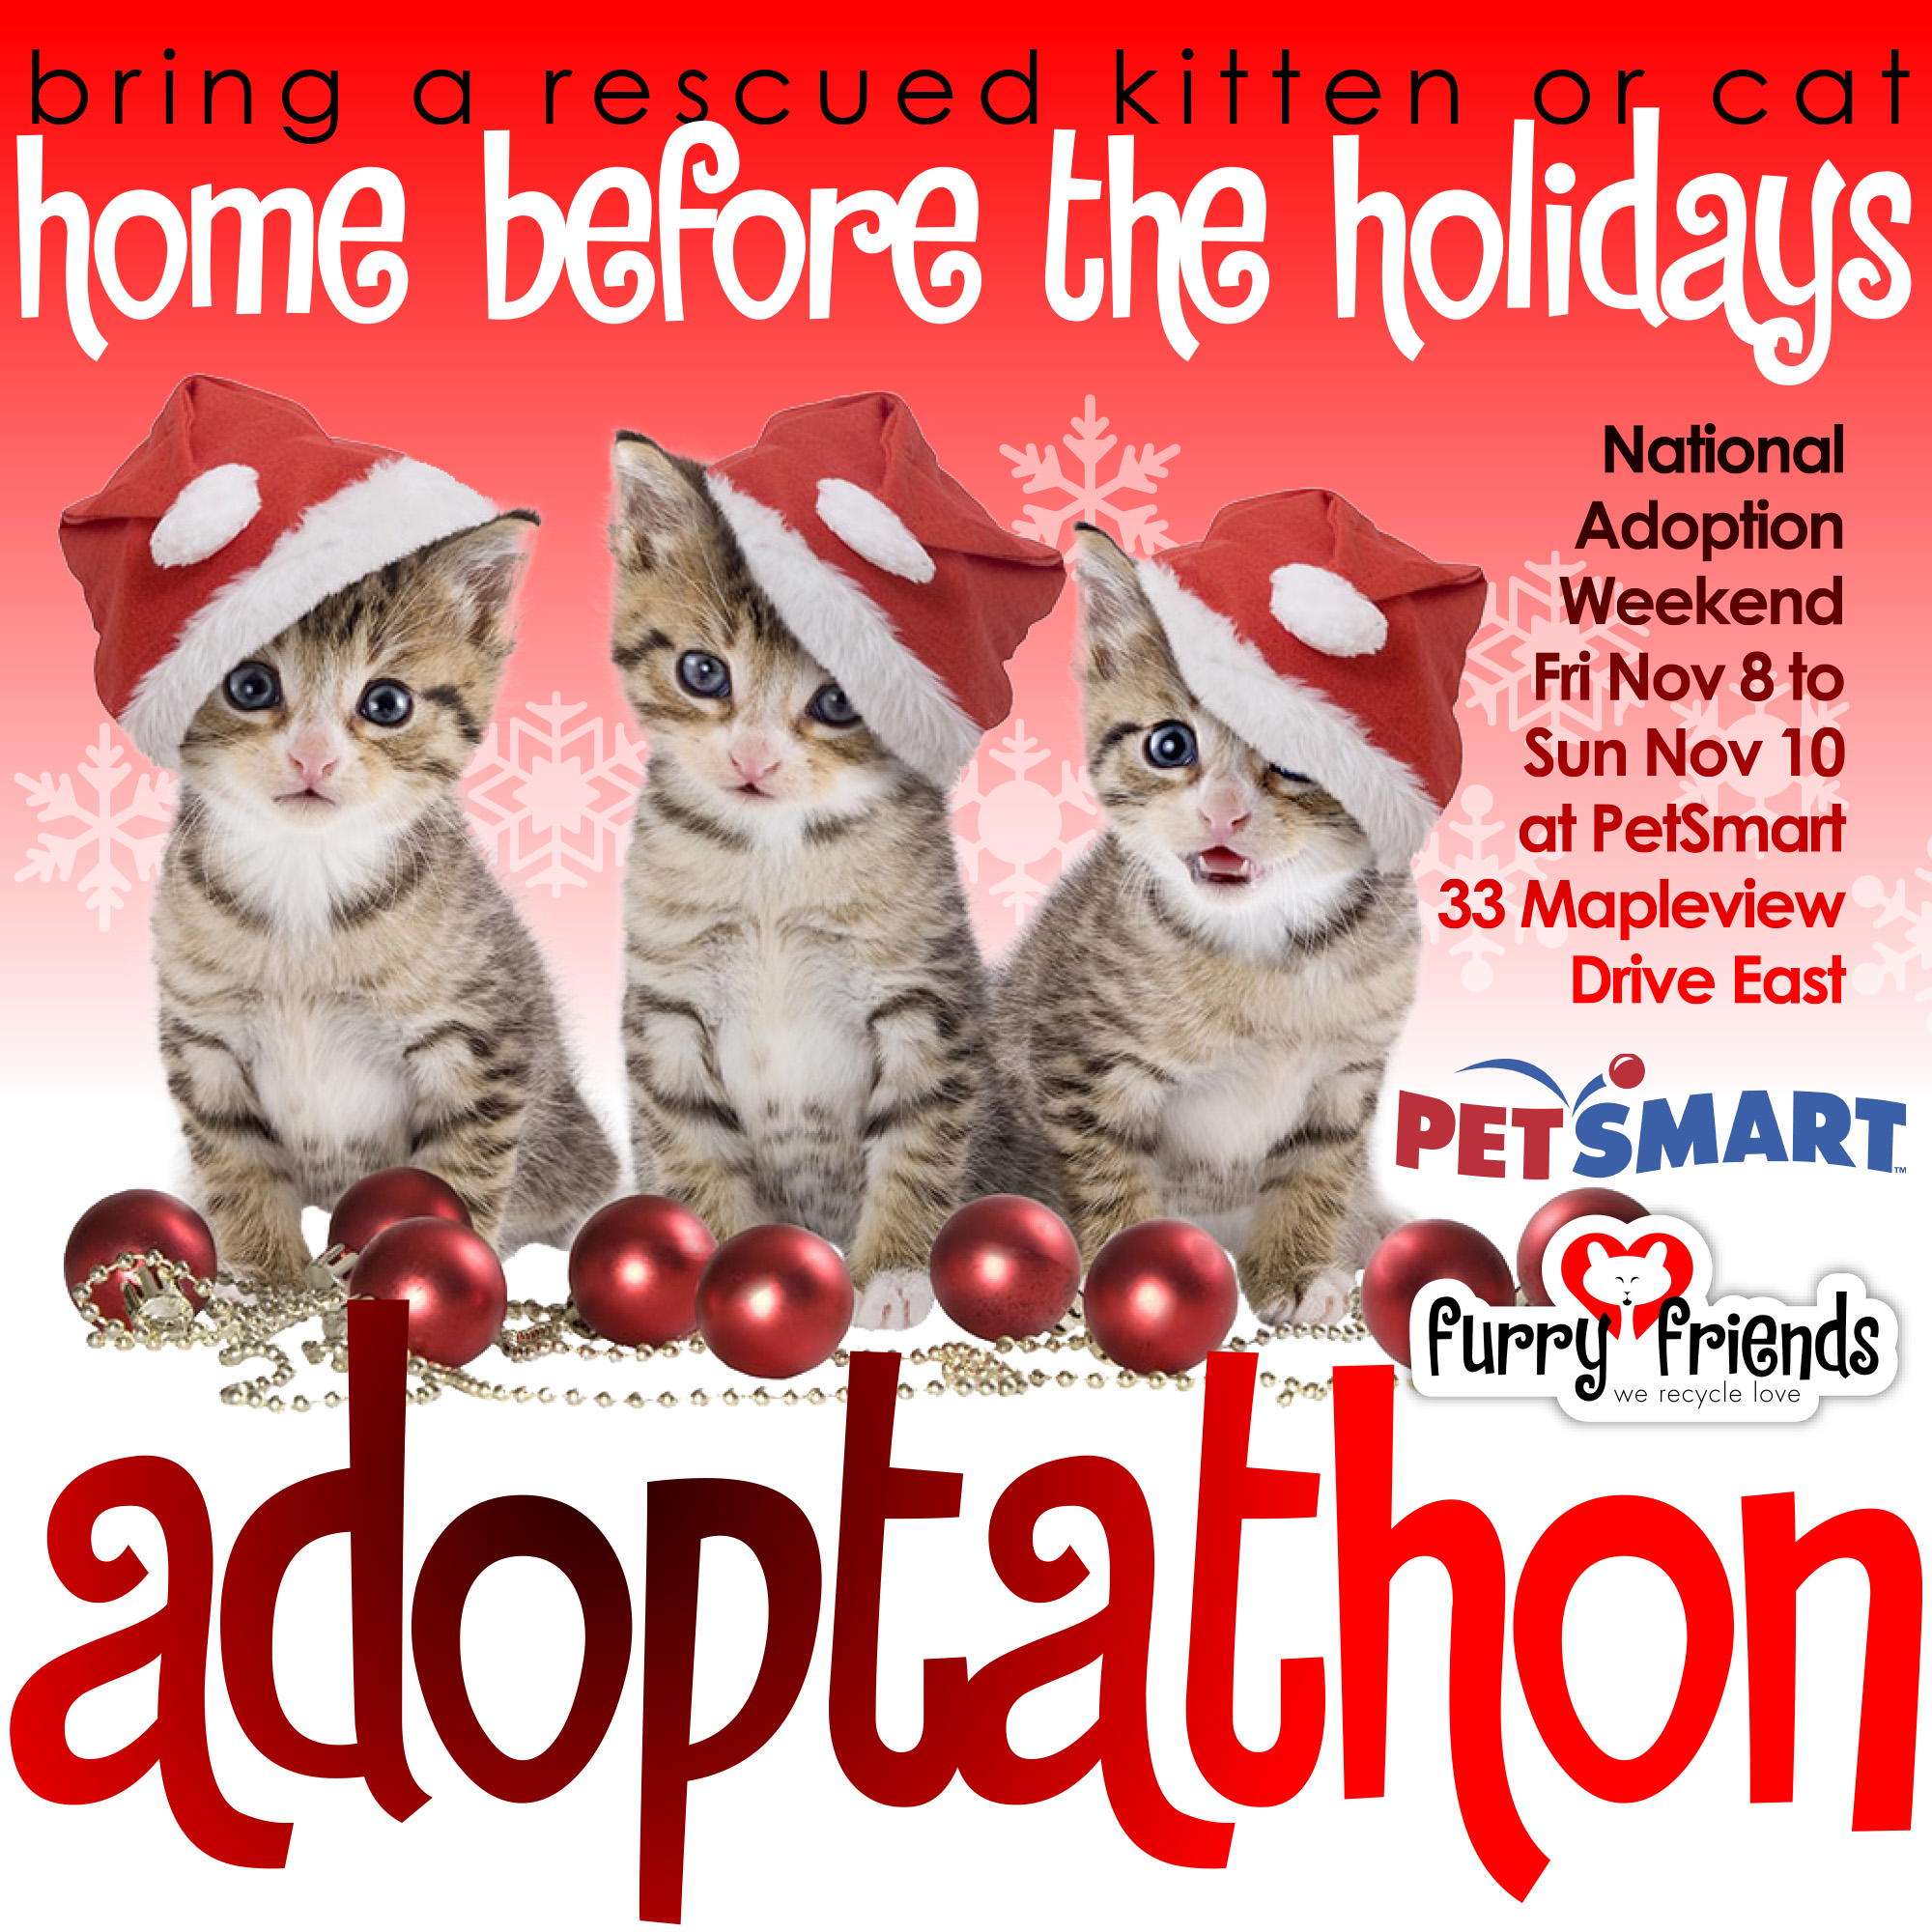 Furry Friends' PetSmart Adoptathon Nov. 8th to 10th